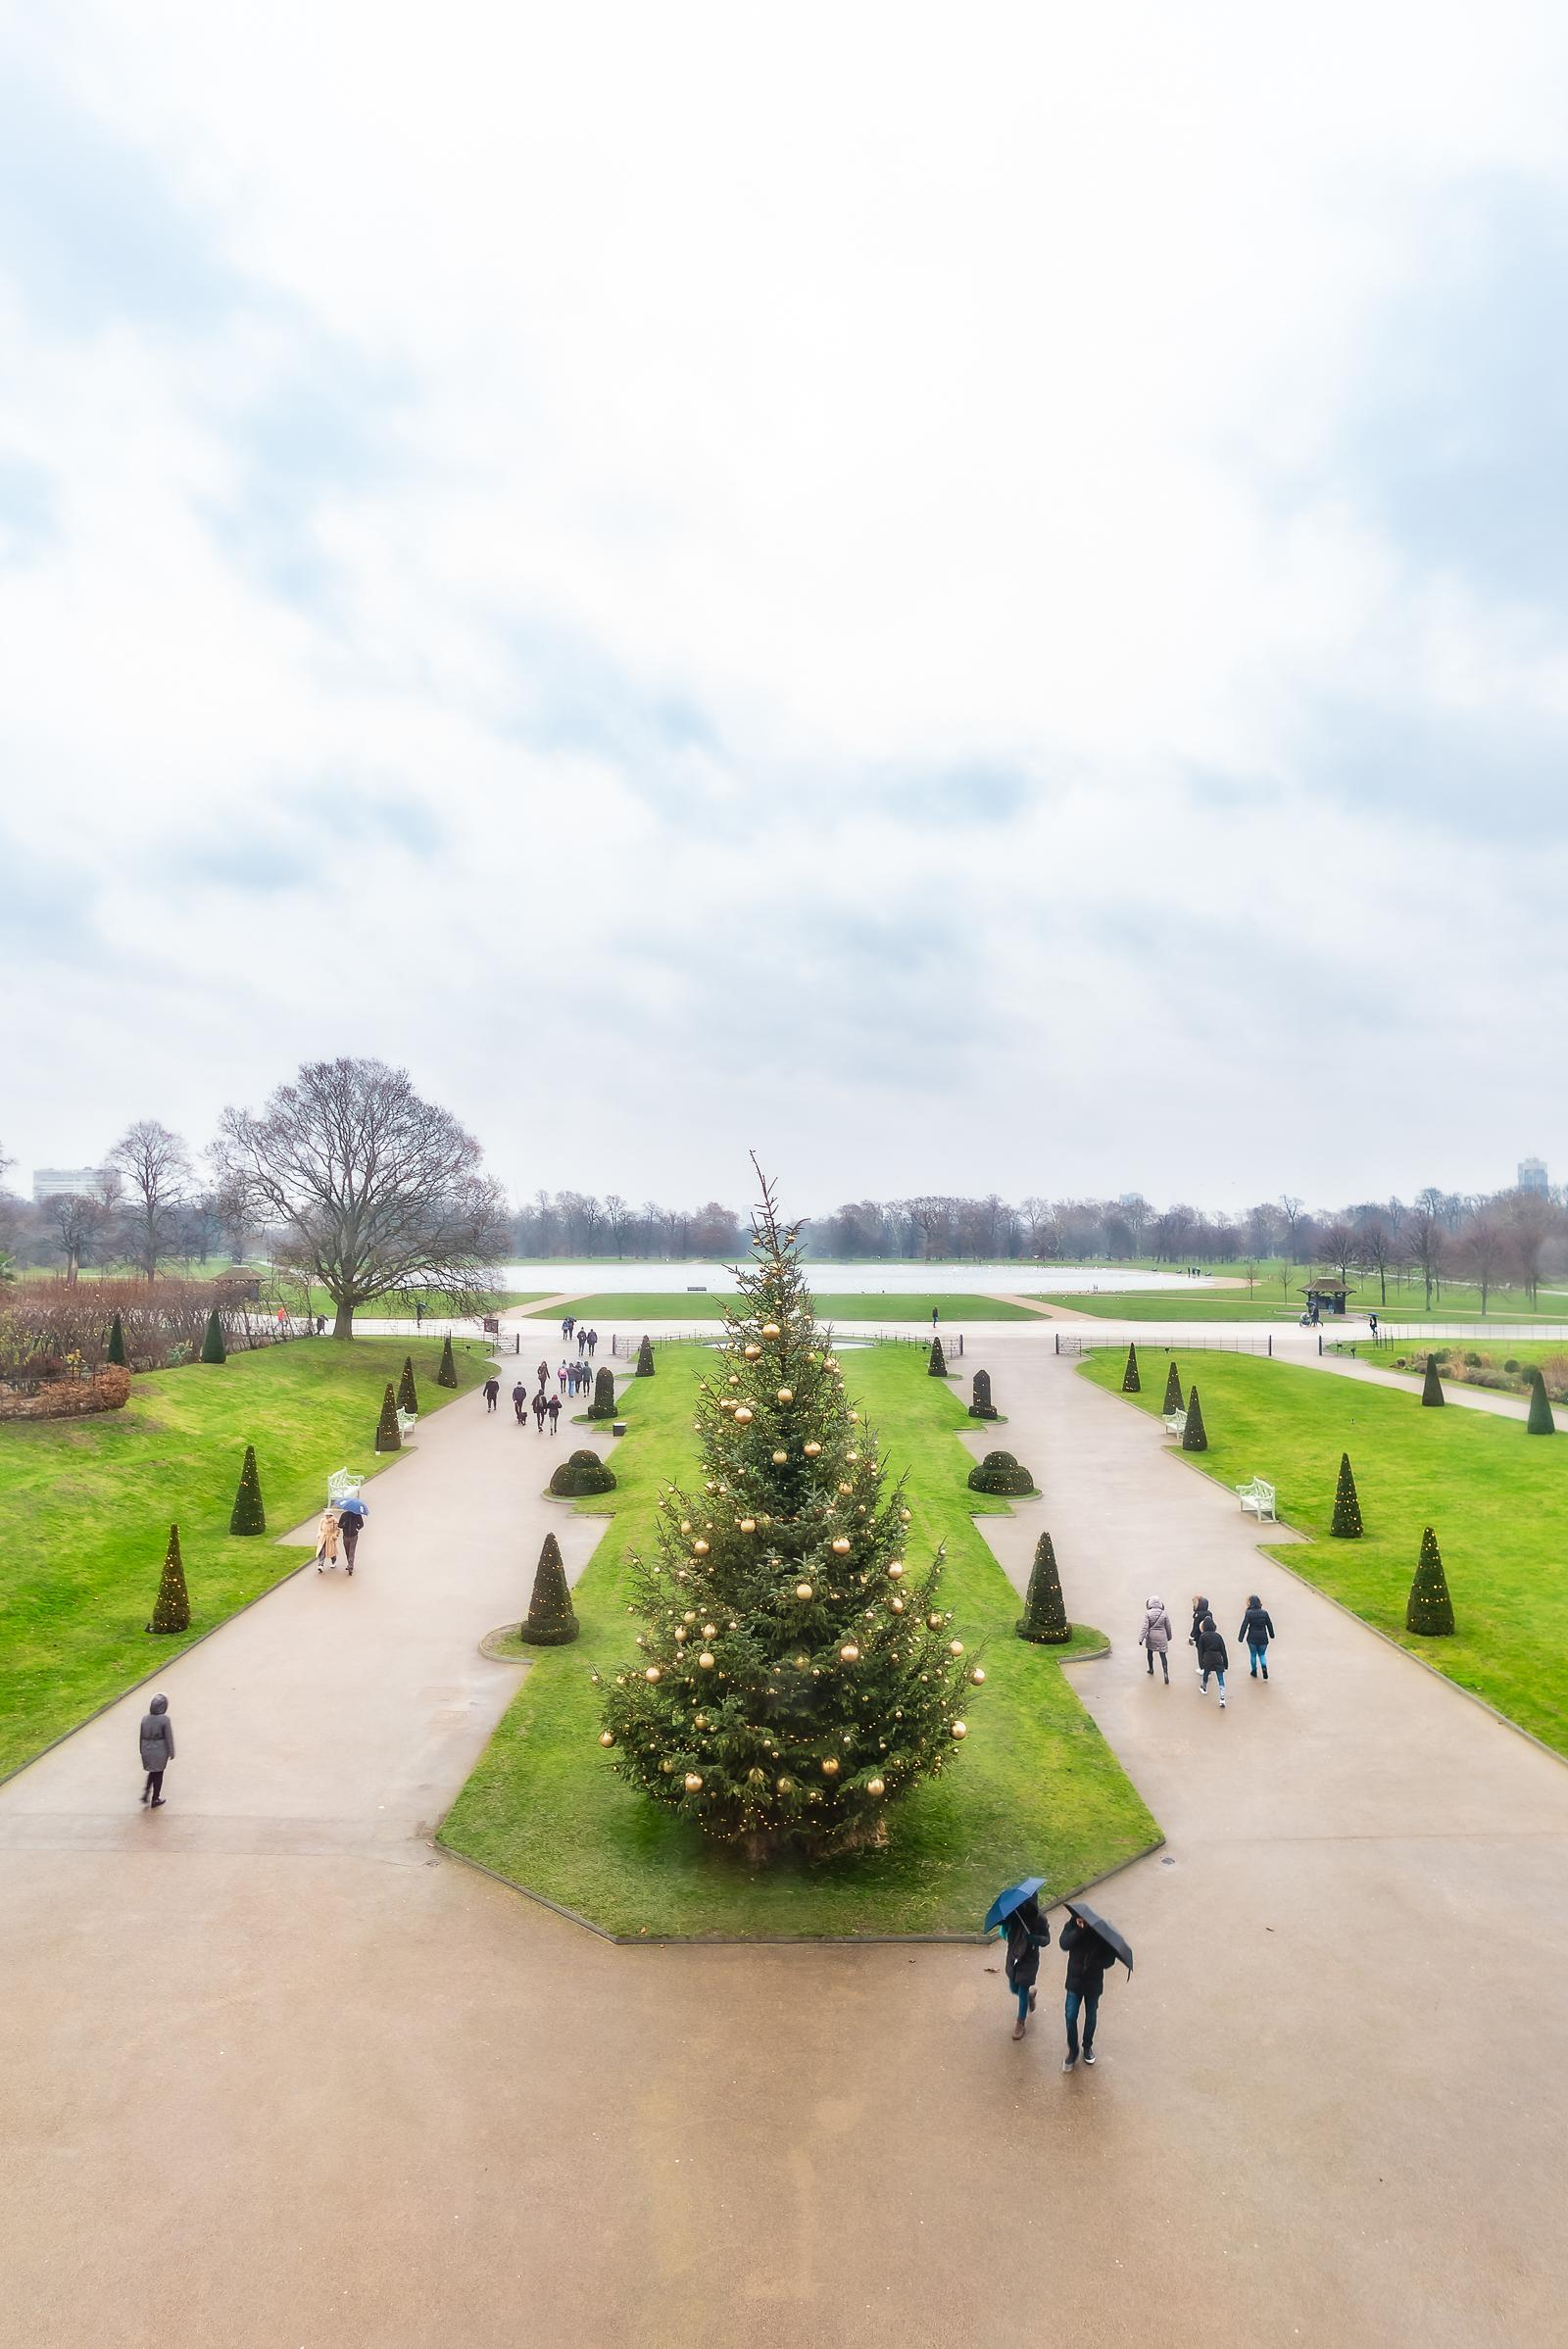 Kensington Palace London December 2018